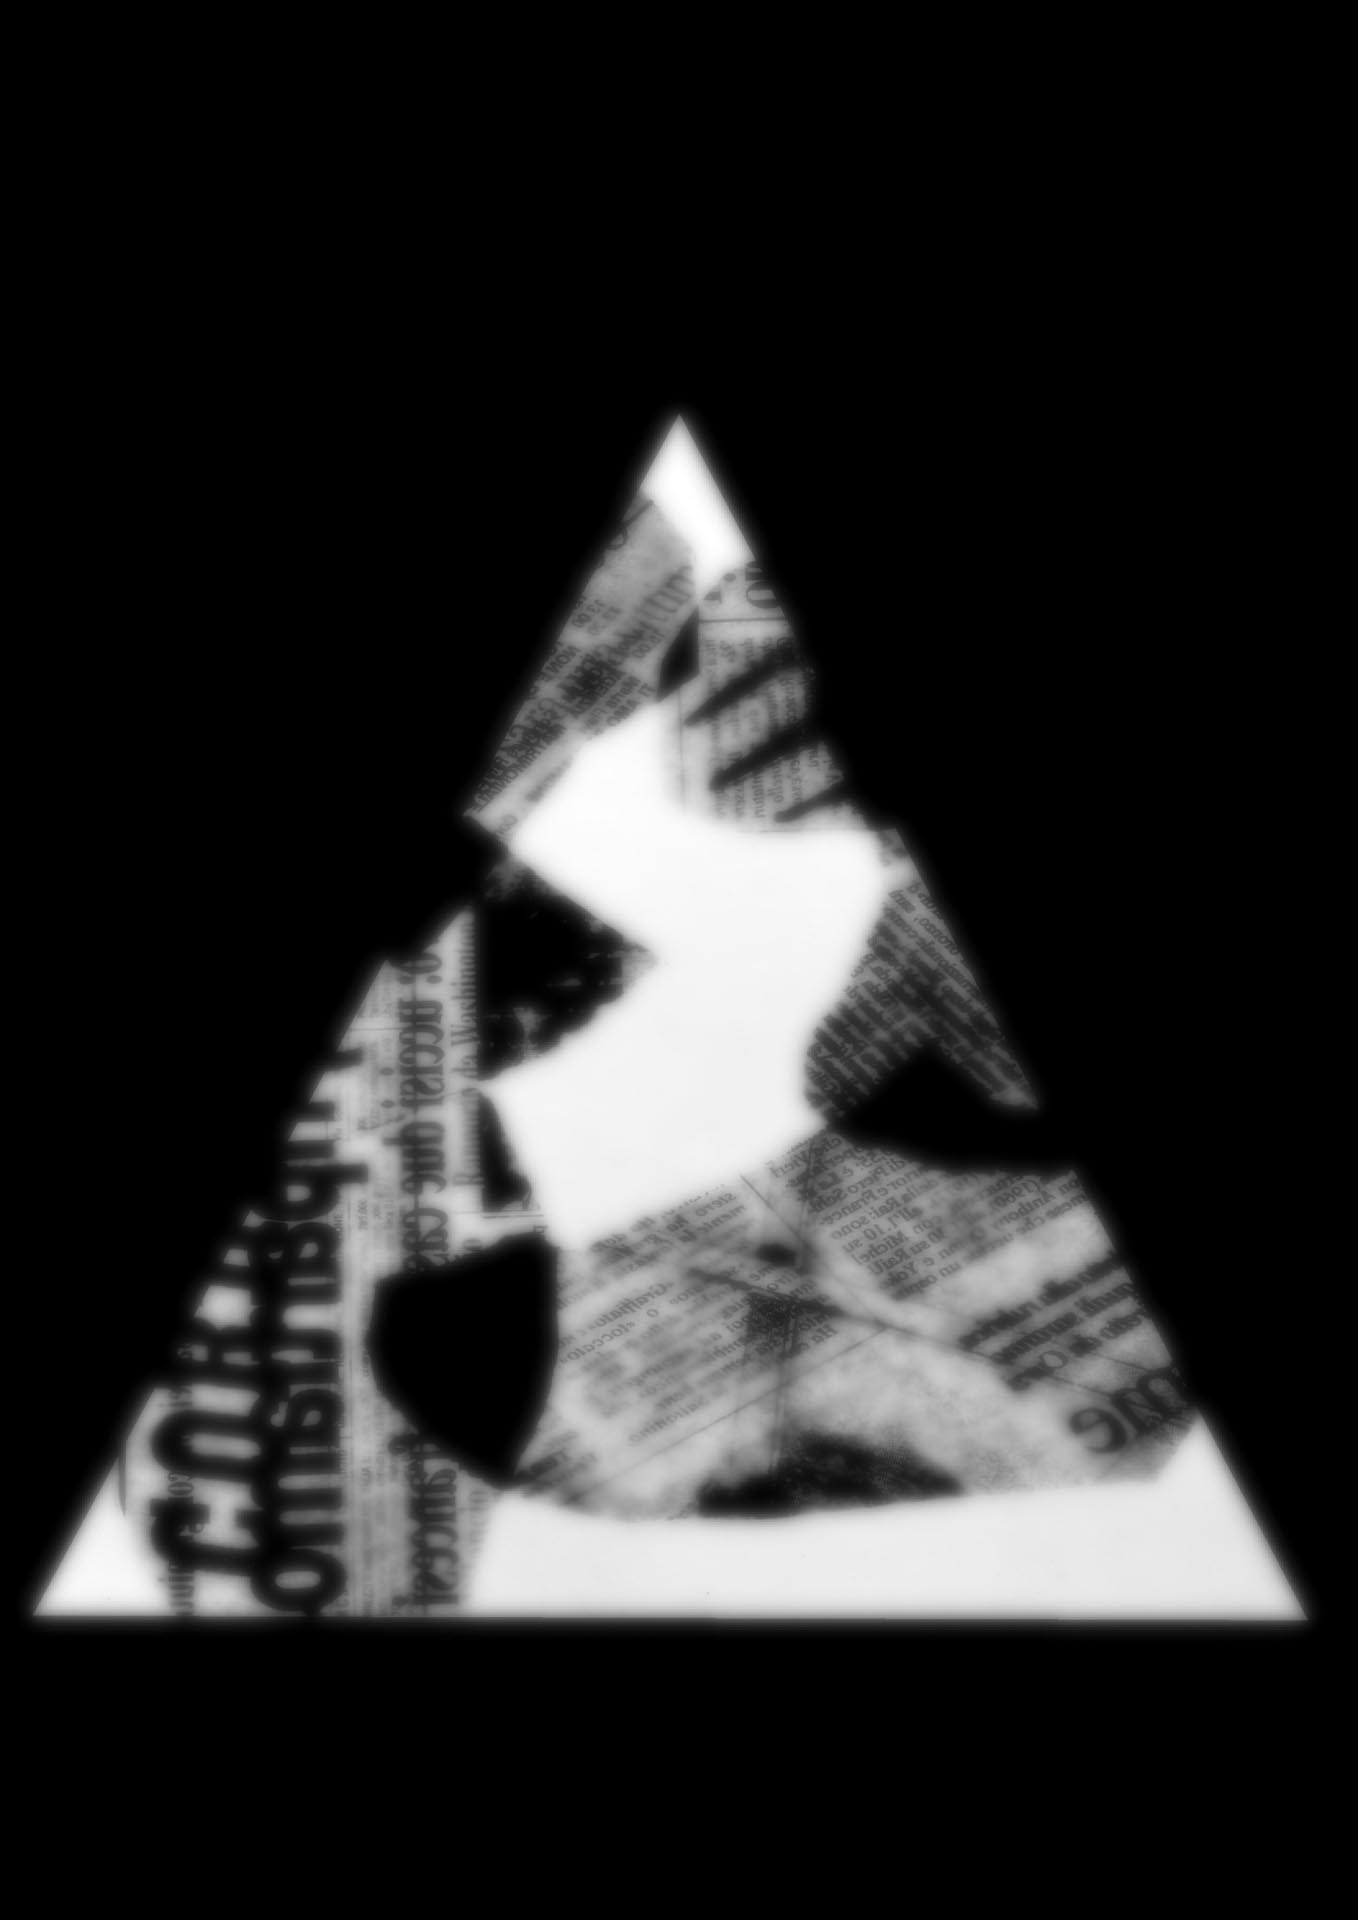 Schadography,2018- Triangle Composition n°3 Workshop ,2001-'02